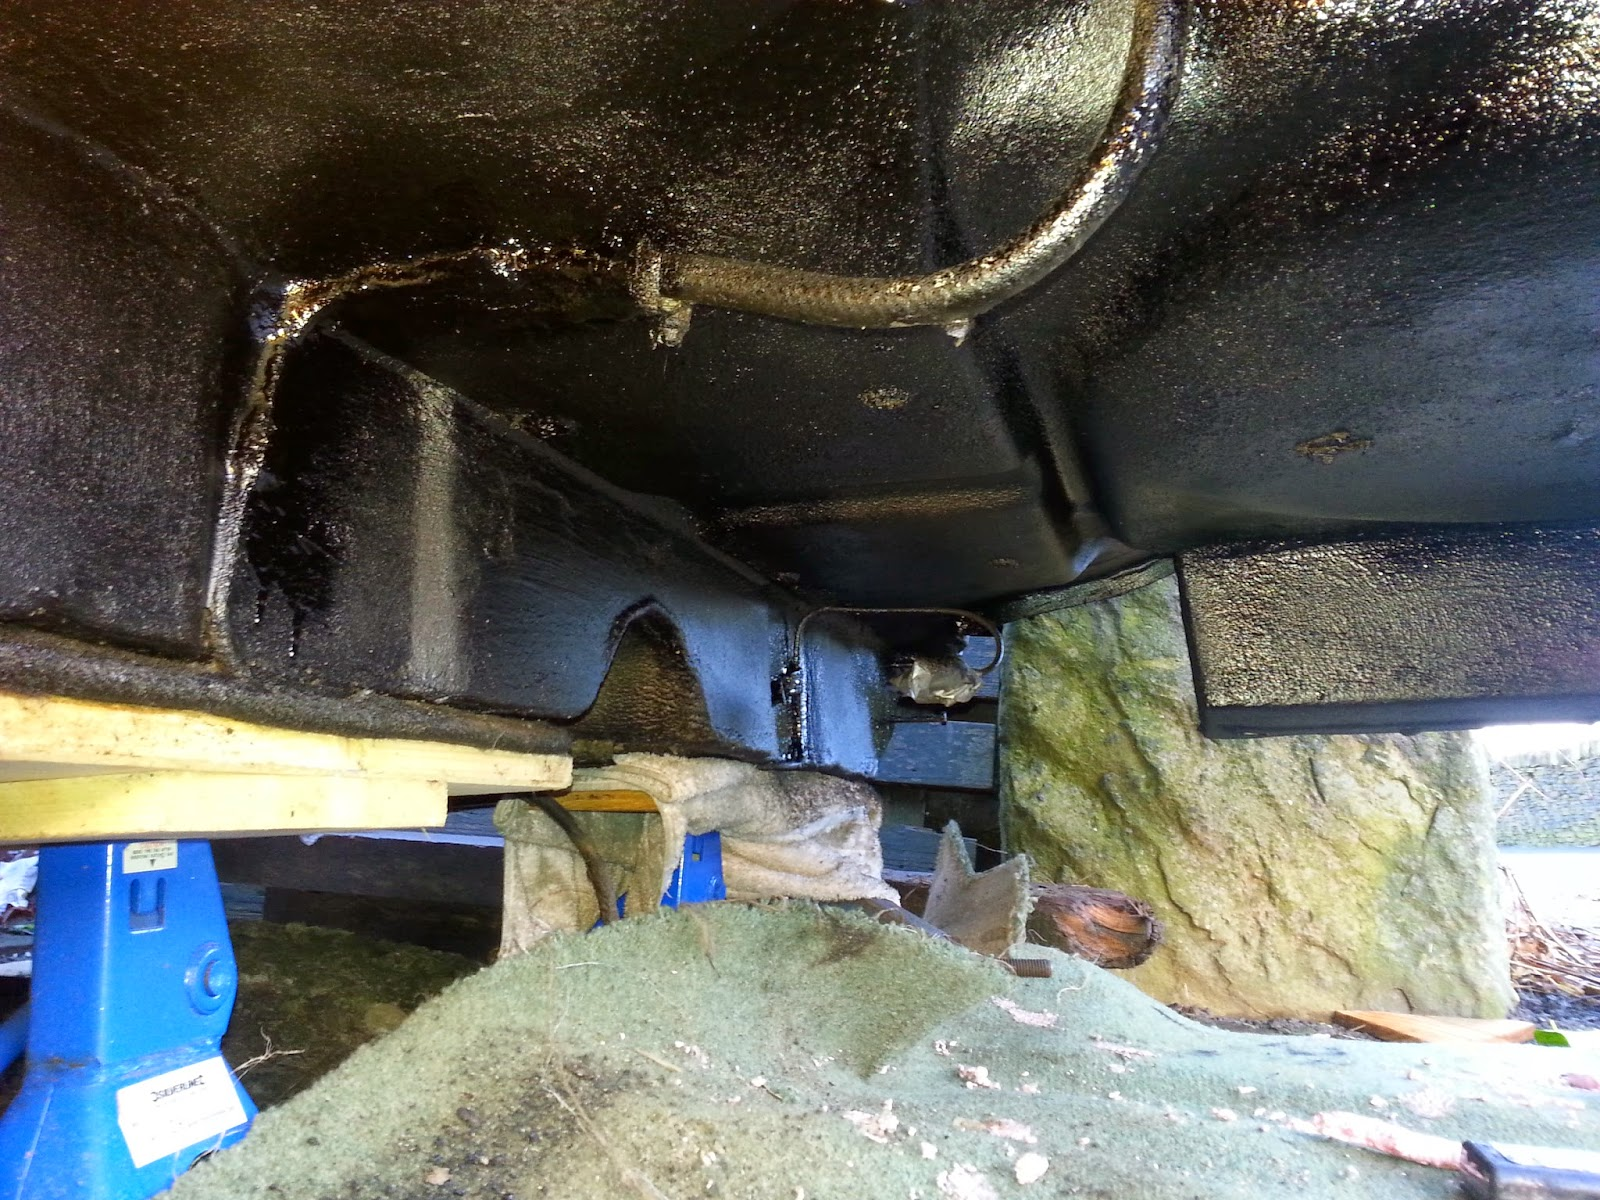 And the engine mounted to the subframe with exhaust system in place - Cut A Hole In The Subframe For The Rear Exhaust Mount